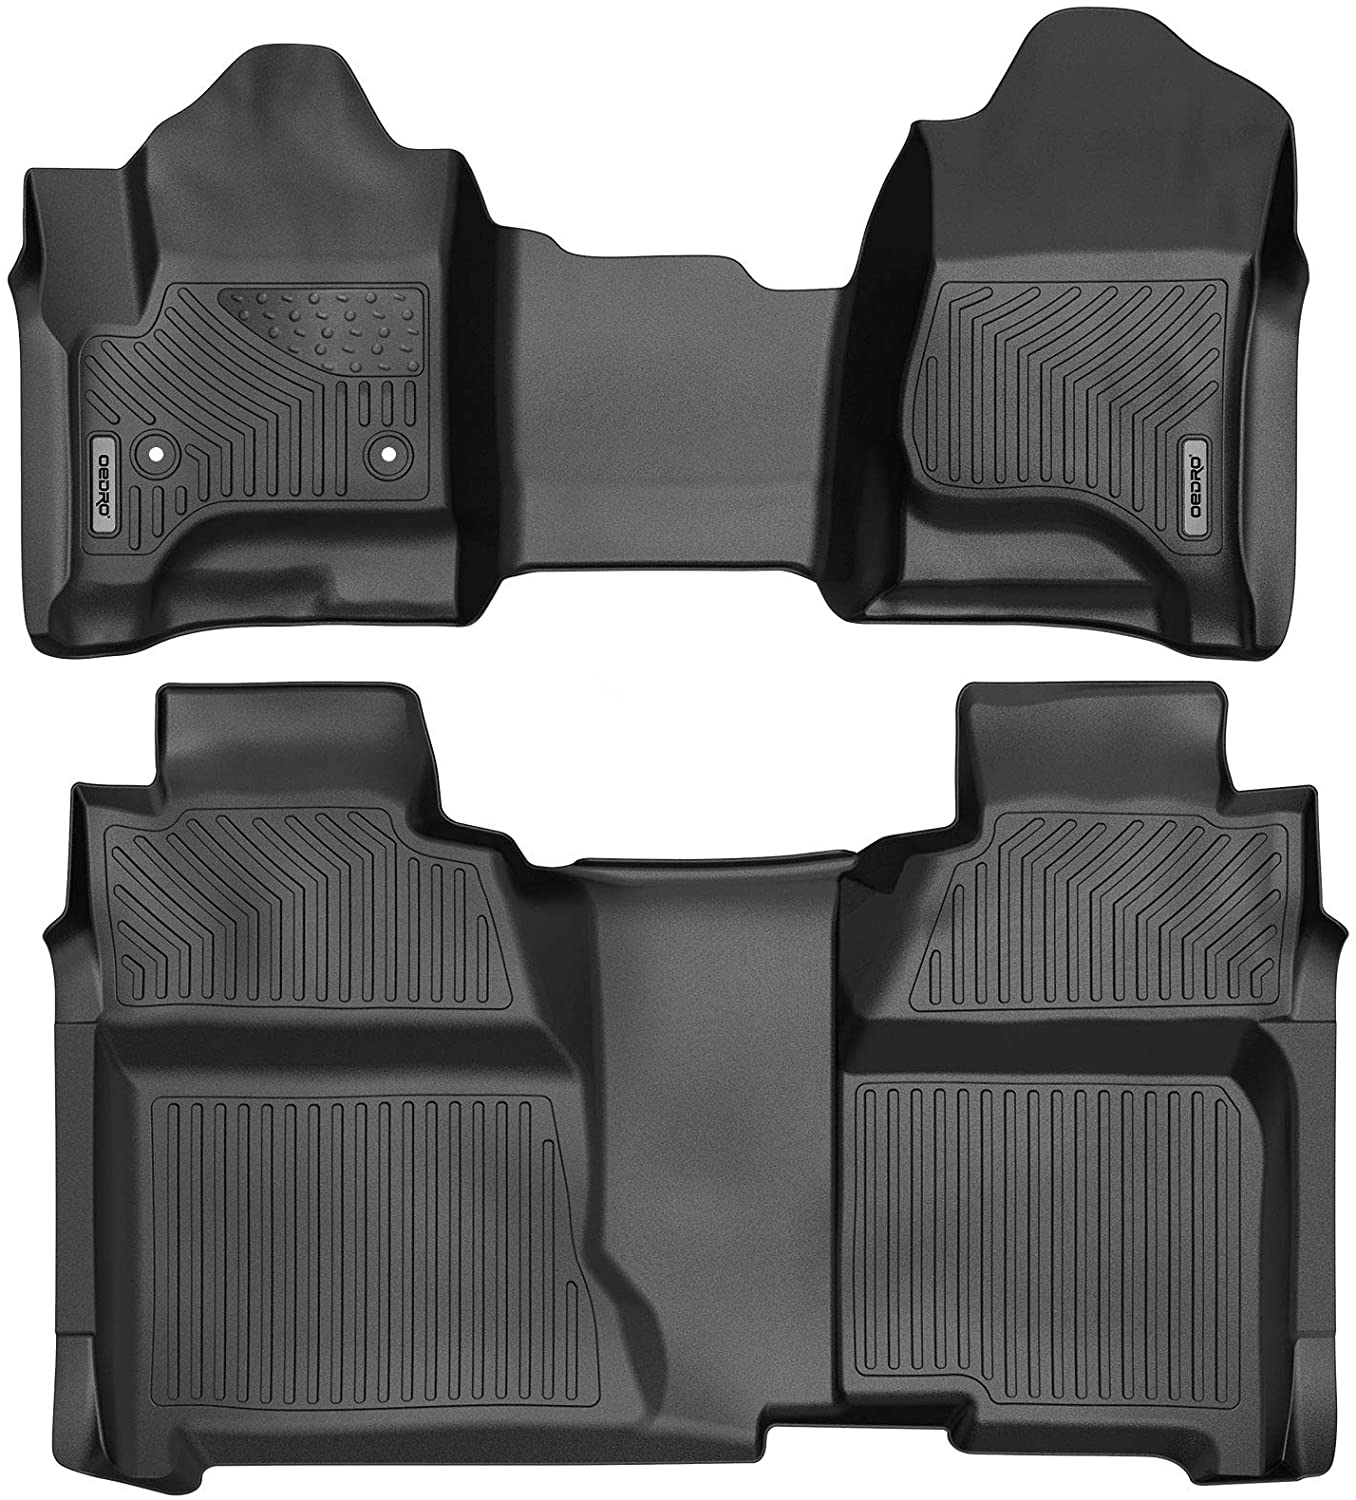 oEdRo Floor Mats Compatible for 2014-2018 Silverado/Sierra 1500, 2015-2019 2500HD/3500HD Crew Cab, with 1st Row Bench Seat, Black TPE All-Weather Guard Includes 1st and 2nd Row: Full Set Liners